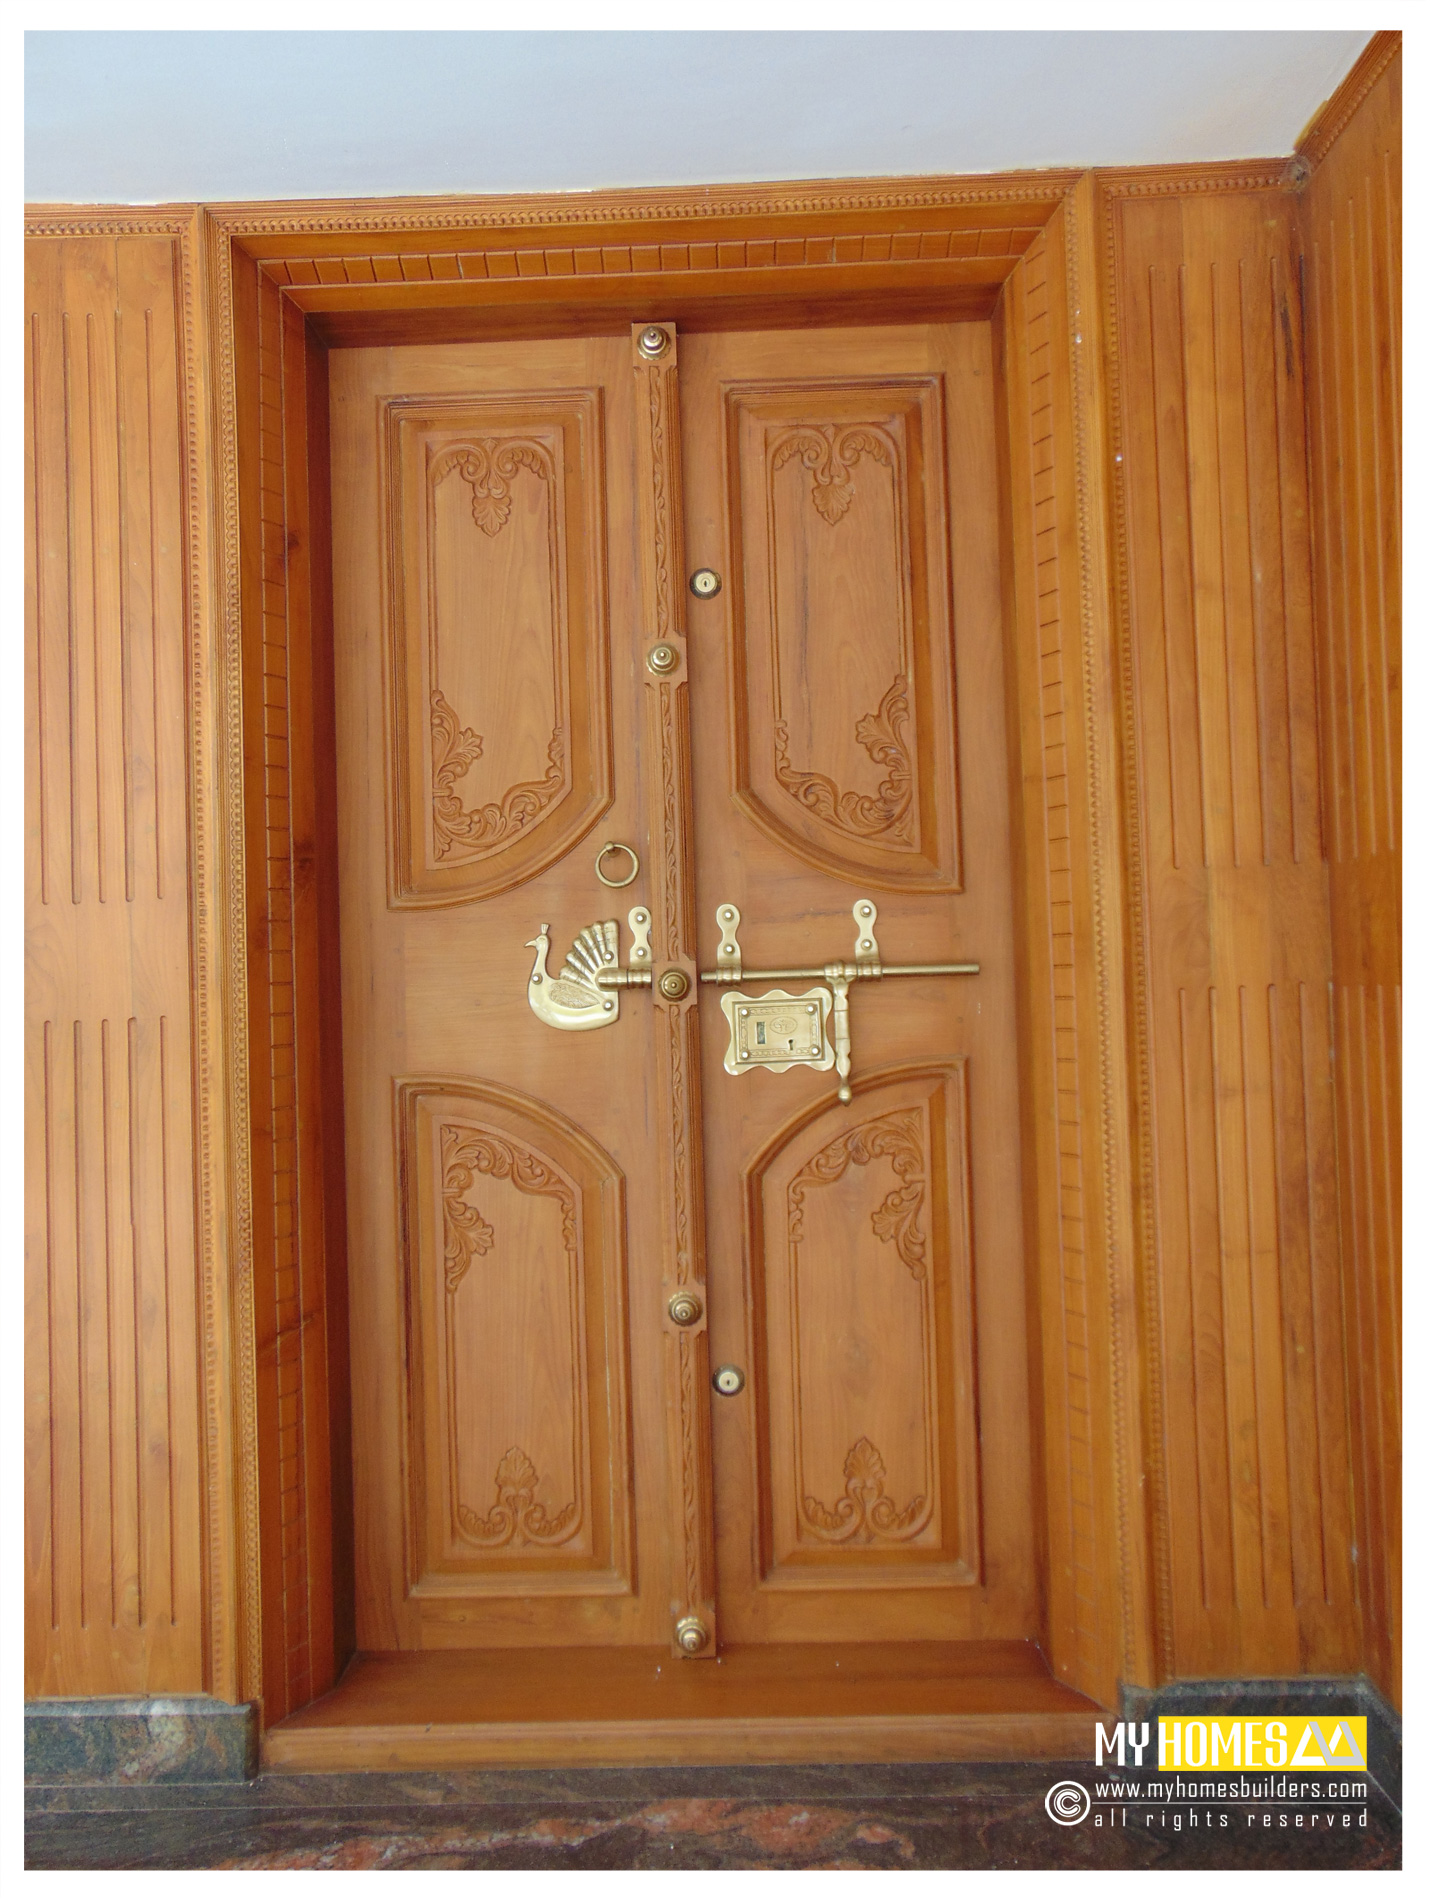 New idea for homes main door designs in kerala india for Door pattern design